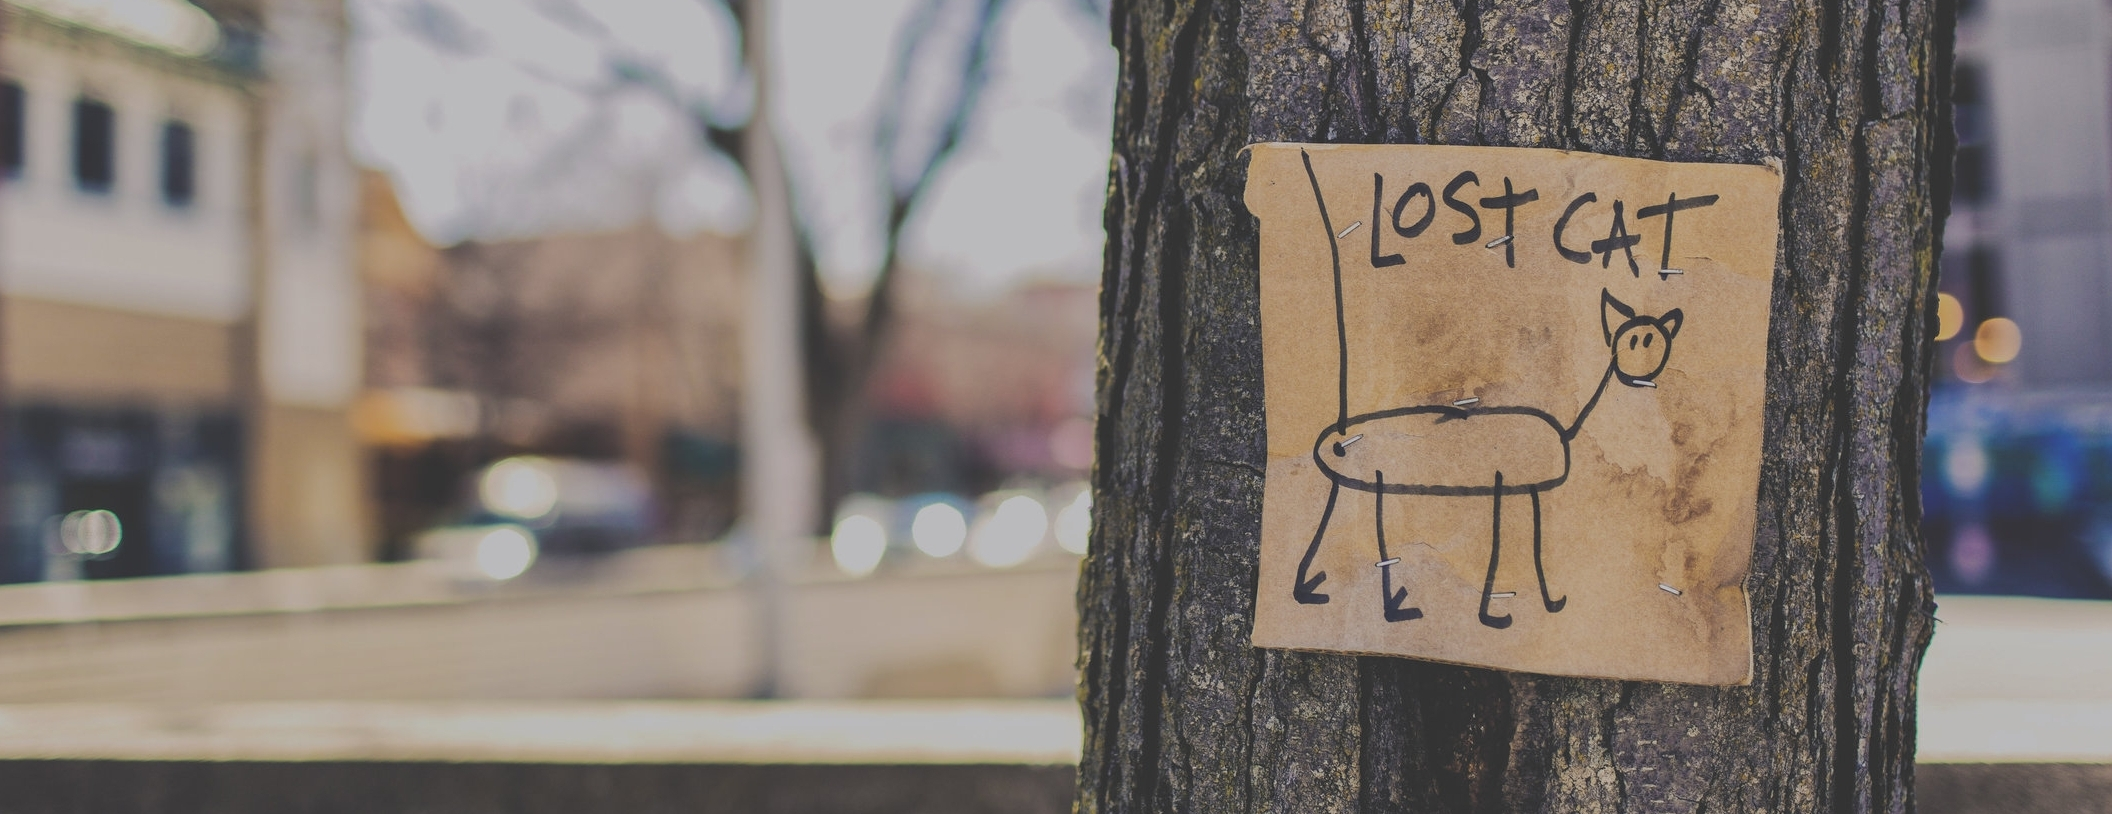 lost-cat-tree-sign-fun-159868.jpg